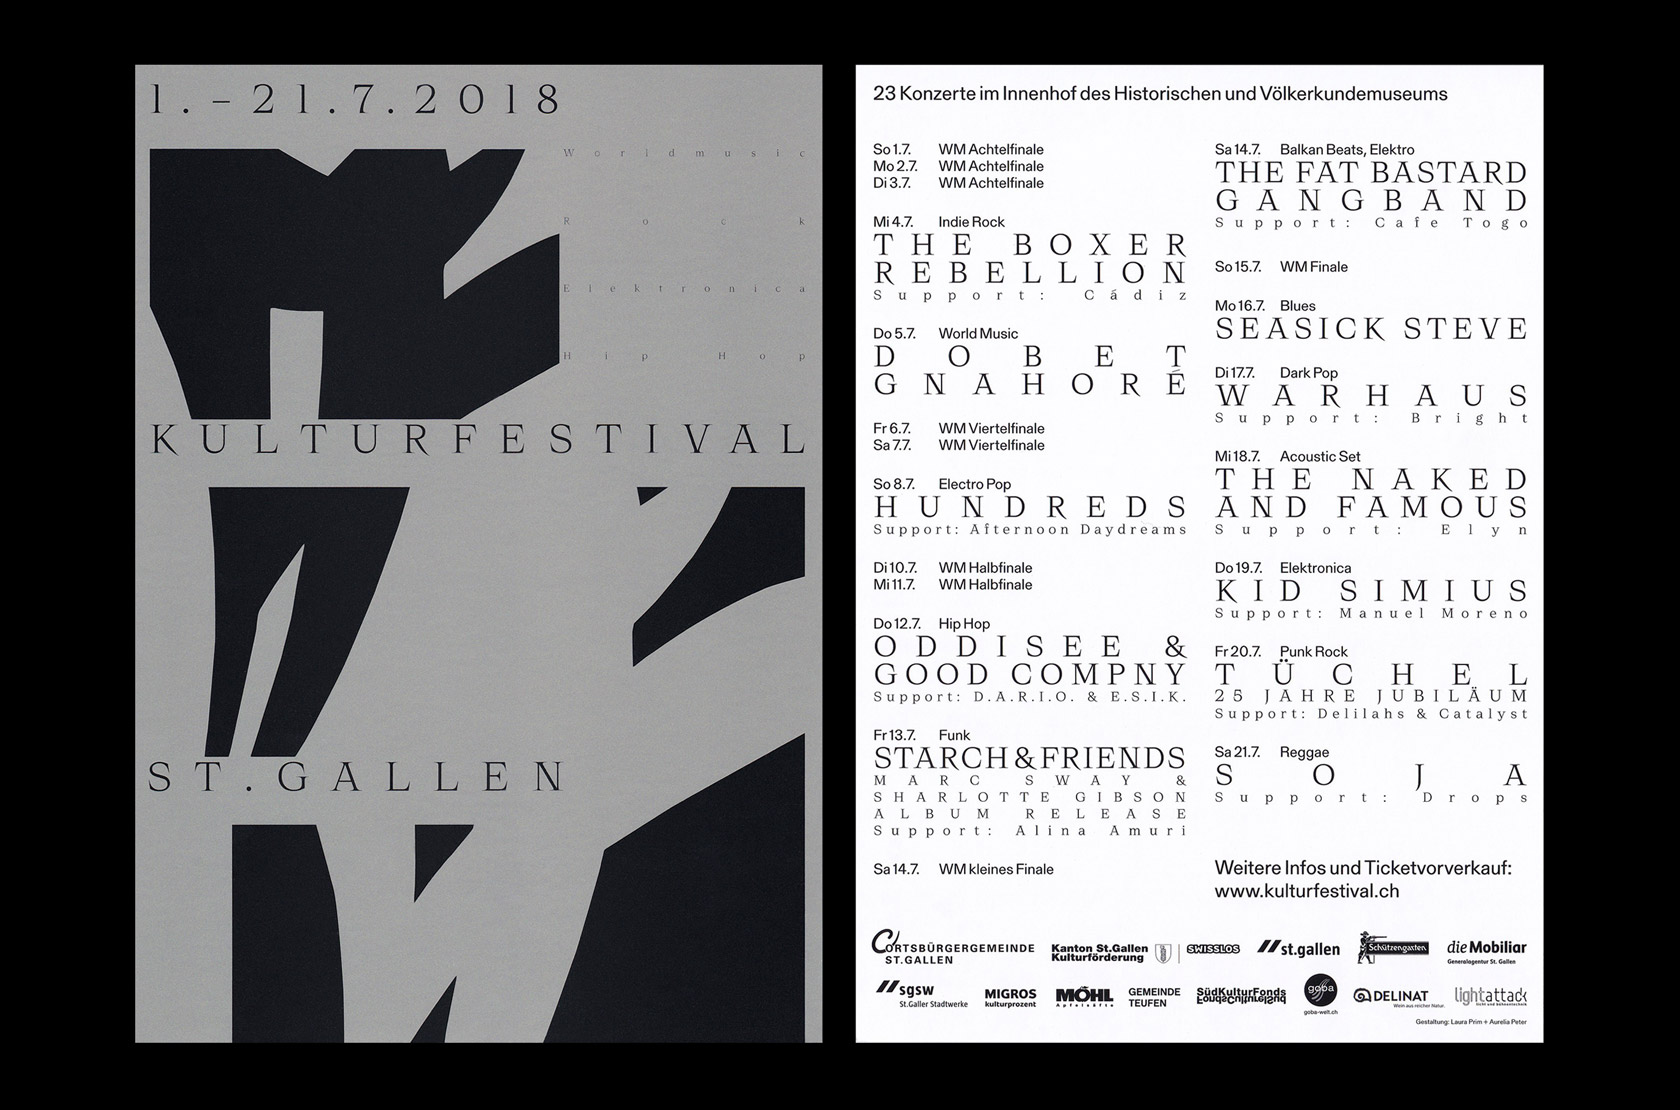 collide24 4 kulturfestival st gallen - combining graphic design with musical and cultural roots